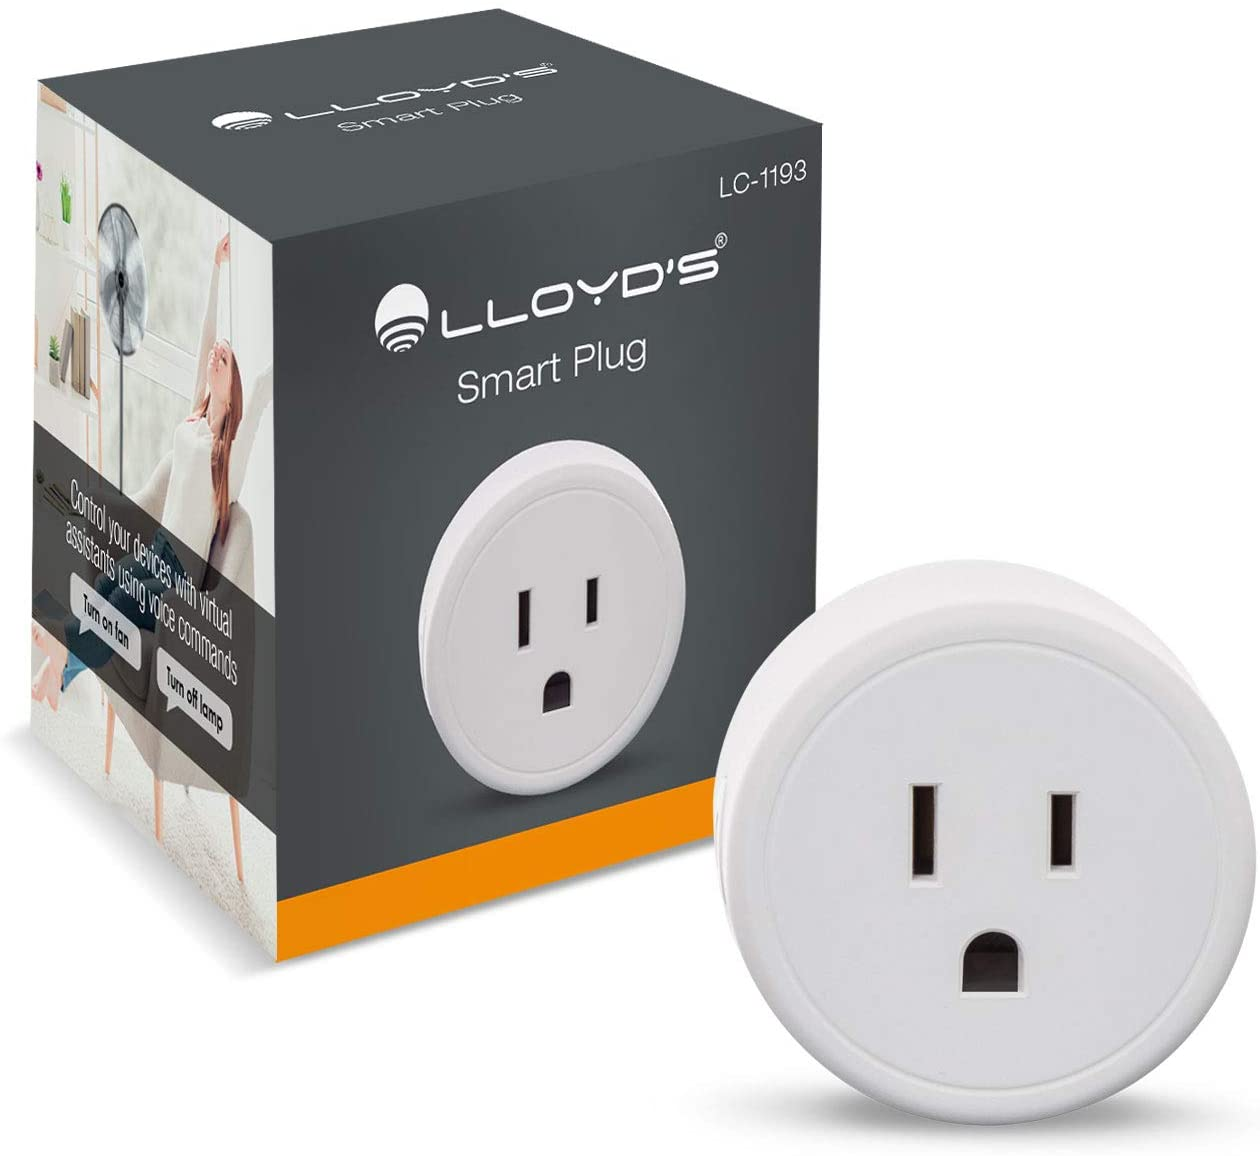 WiFi Smart Plug, Compatible with Alexa and Google Home, Set Timers and Schedules from App, No Hub Required, for 2.4 GHz Networks